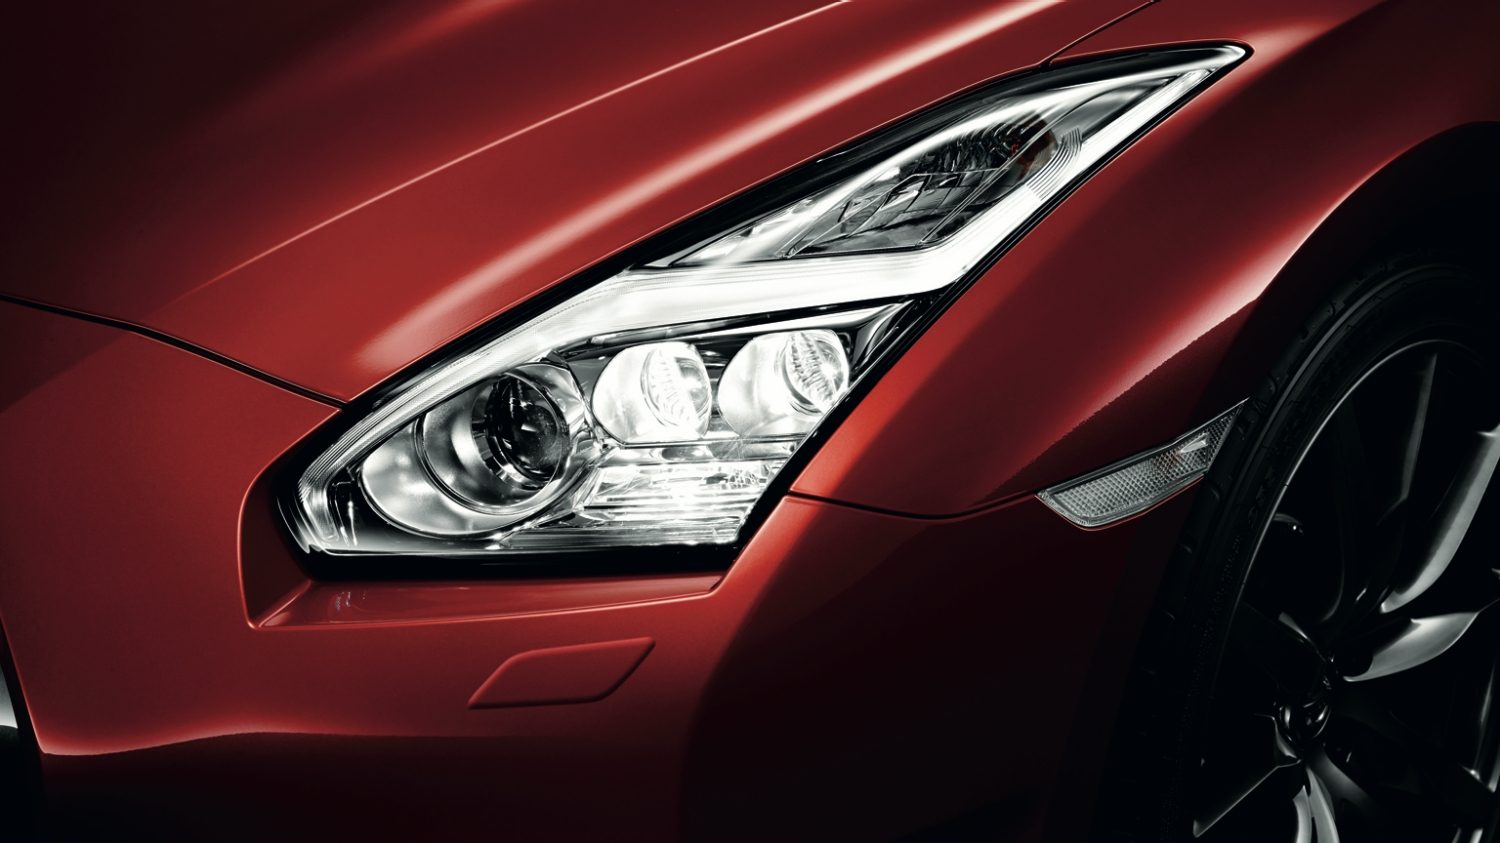 Nissan GT-R - Mulit-LED Headlamps